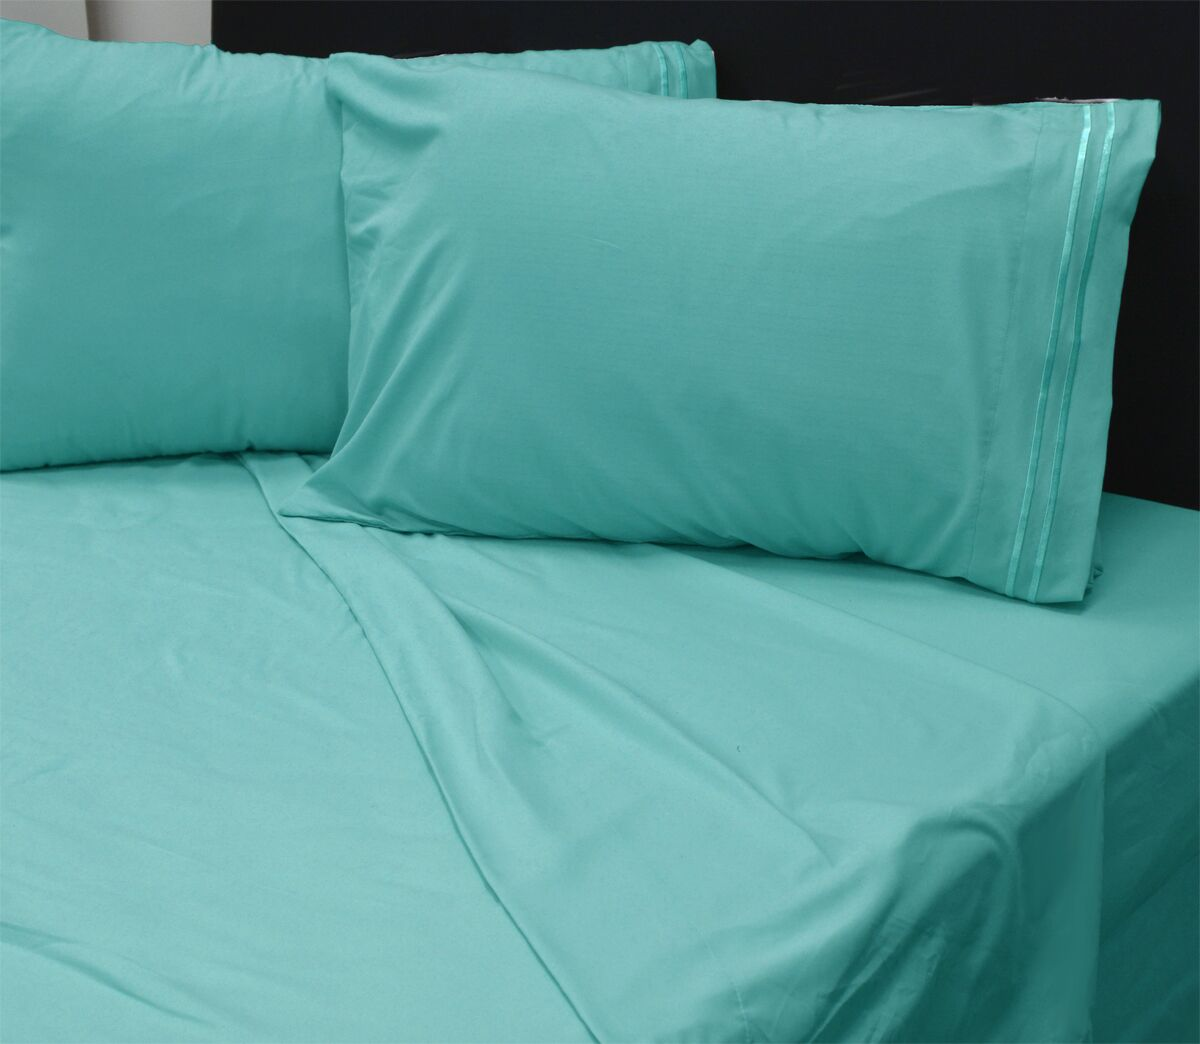 Summers 1800 Sheets Size: Double, Color: Turquoise